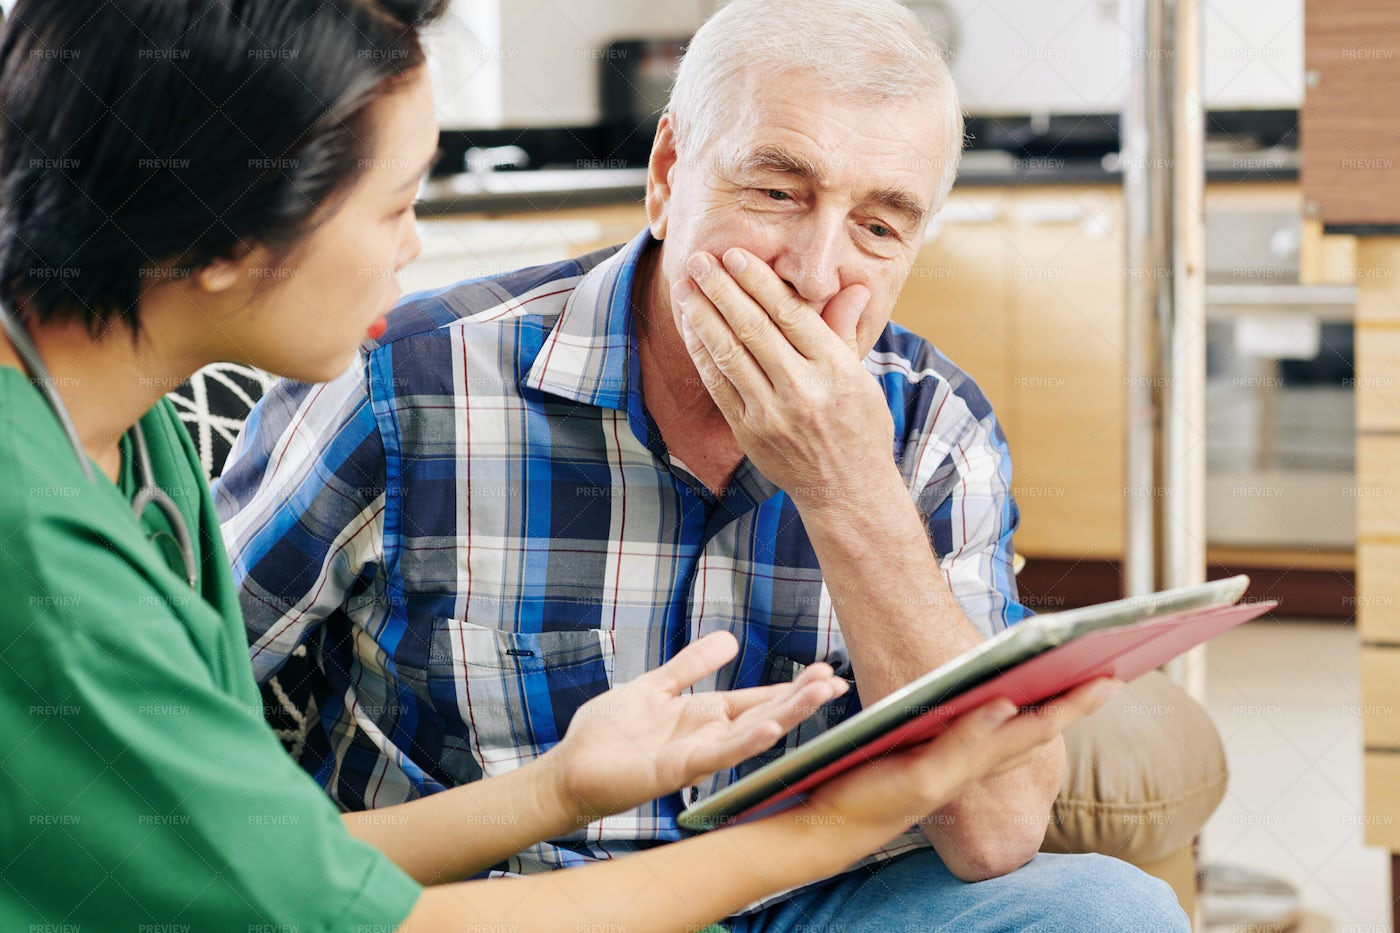 Bad Medical Tests Results: Stock Photos